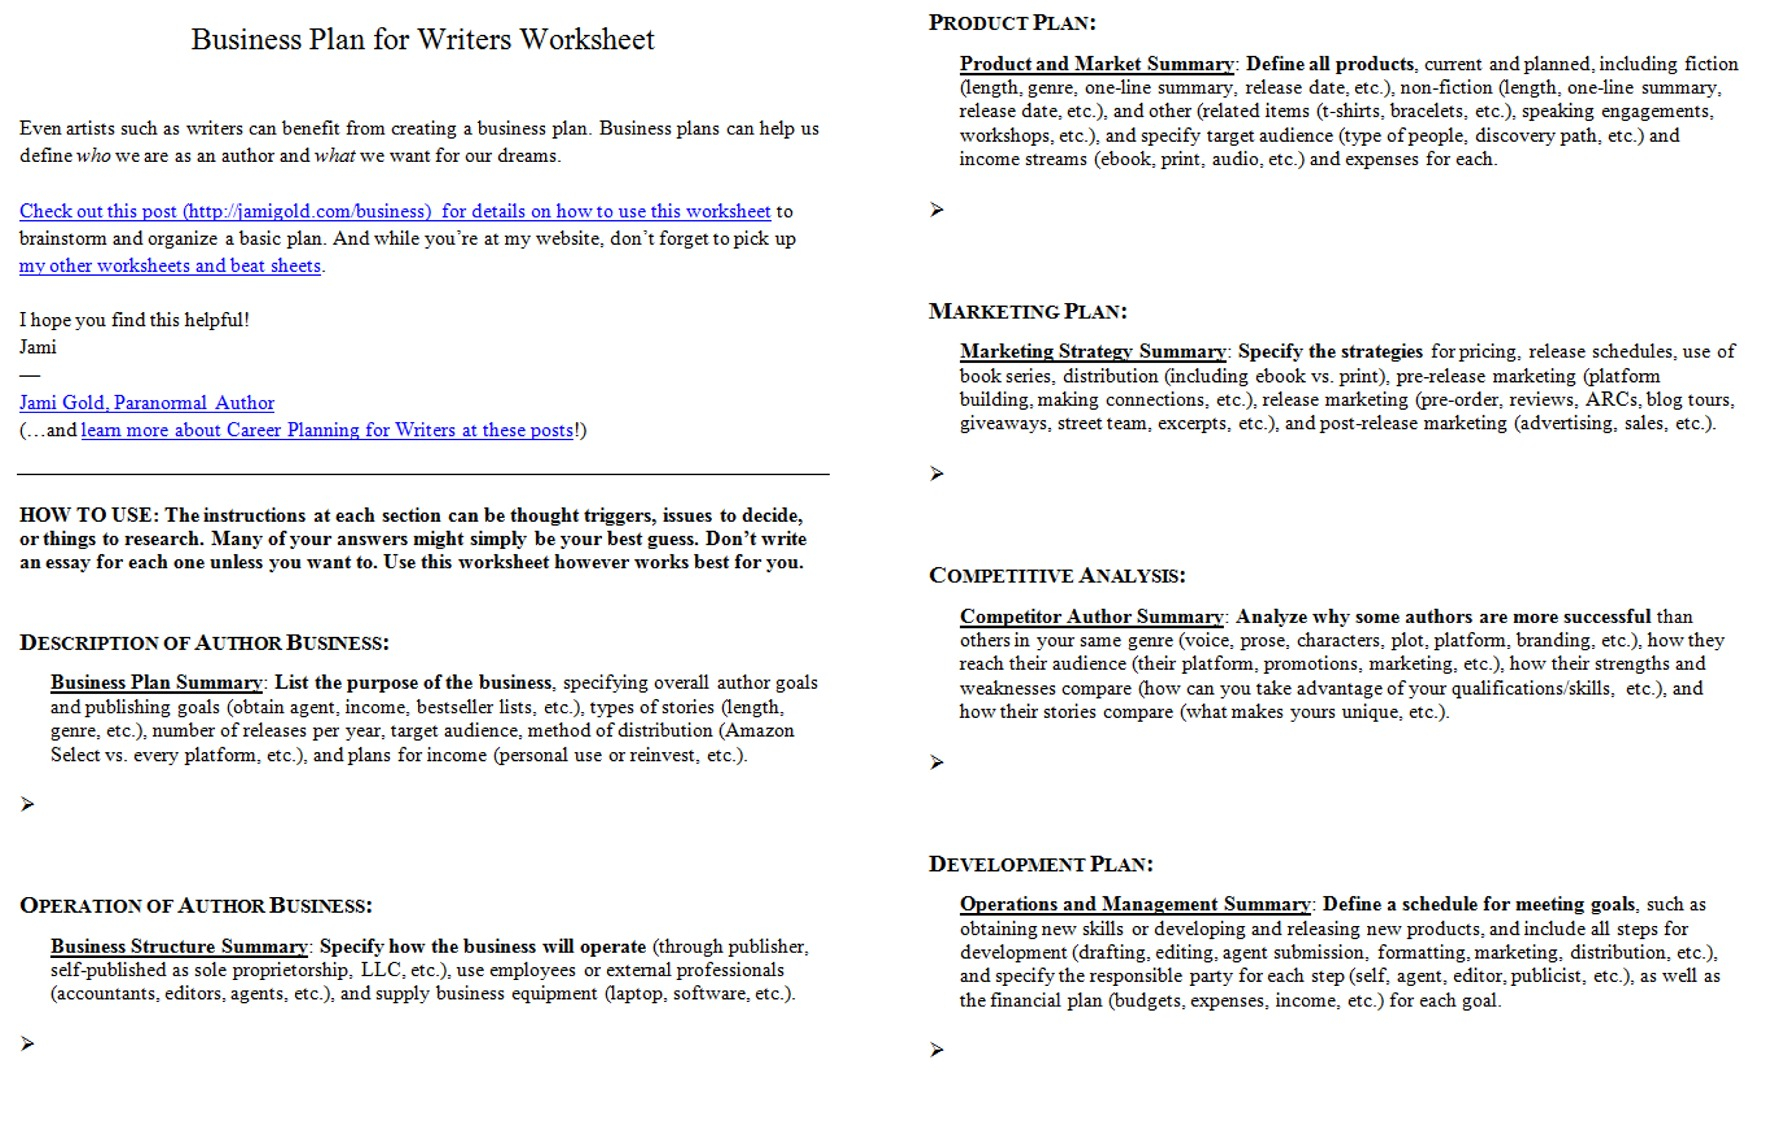 Weirdmailus  Seductive Worksheets For Writers  Jami Gold Paranormal Author With Gorgeous Screen Shot Of Both Pages Of The Business Plan For Writers Worksheet With Adorable Sample Space Worksheets Also Financial Worksheet Excel In Addition Math Slope Worksheets And Finding Angles In Triangles Worksheet As Well As Computer Basics Worksheets Additionally Fraction Percent Decimal Worksheet From Jamigoldcom With Weirdmailus  Gorgeous Worksheets For Writers  Jami Gold Paranormal Author With Adorable Screen Shot Of Both Pages Of The Business Plan For Writers Worksheet And Seductive Sample Space Worksheets Also Financial Worksheet Excel In Addition Math Slope Worksheets From Jamigoldcom